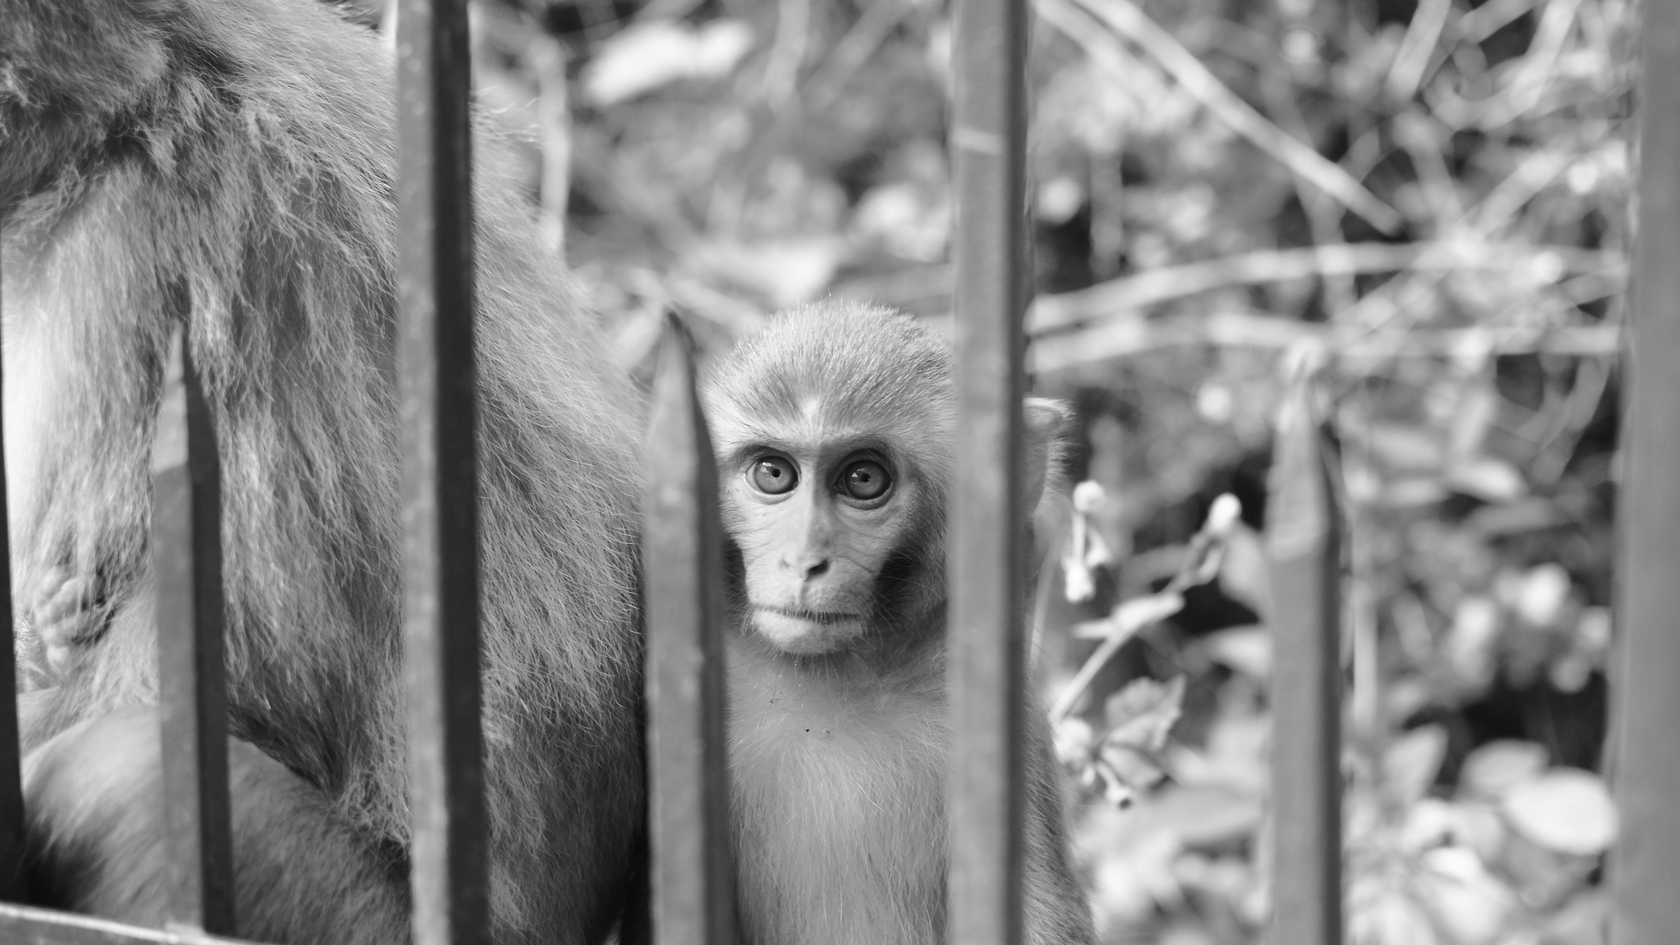 Who is in captivity?